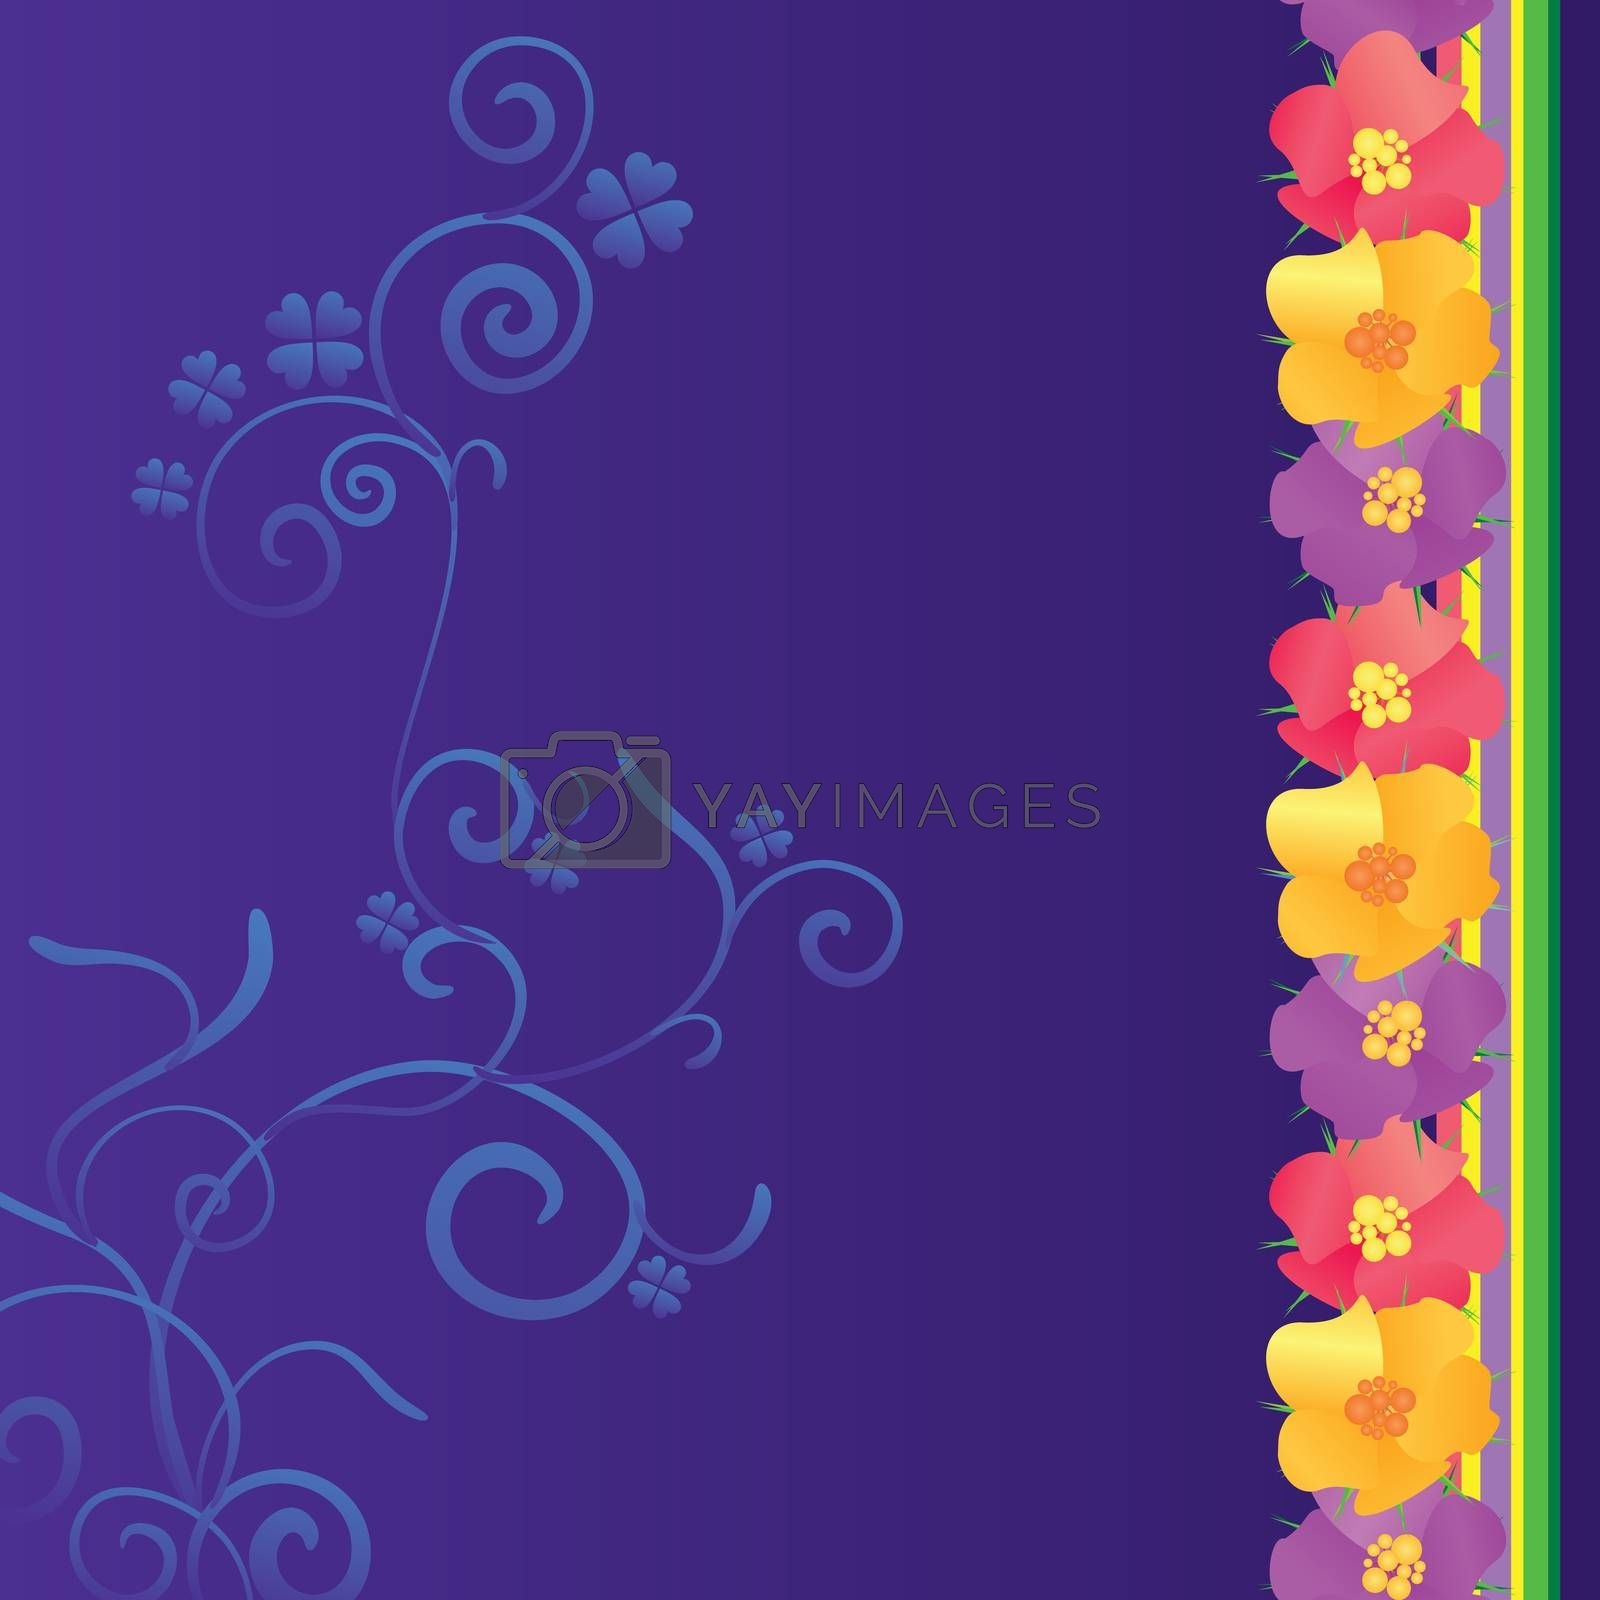 Royalty free image of violet background with flowers border by CherJu